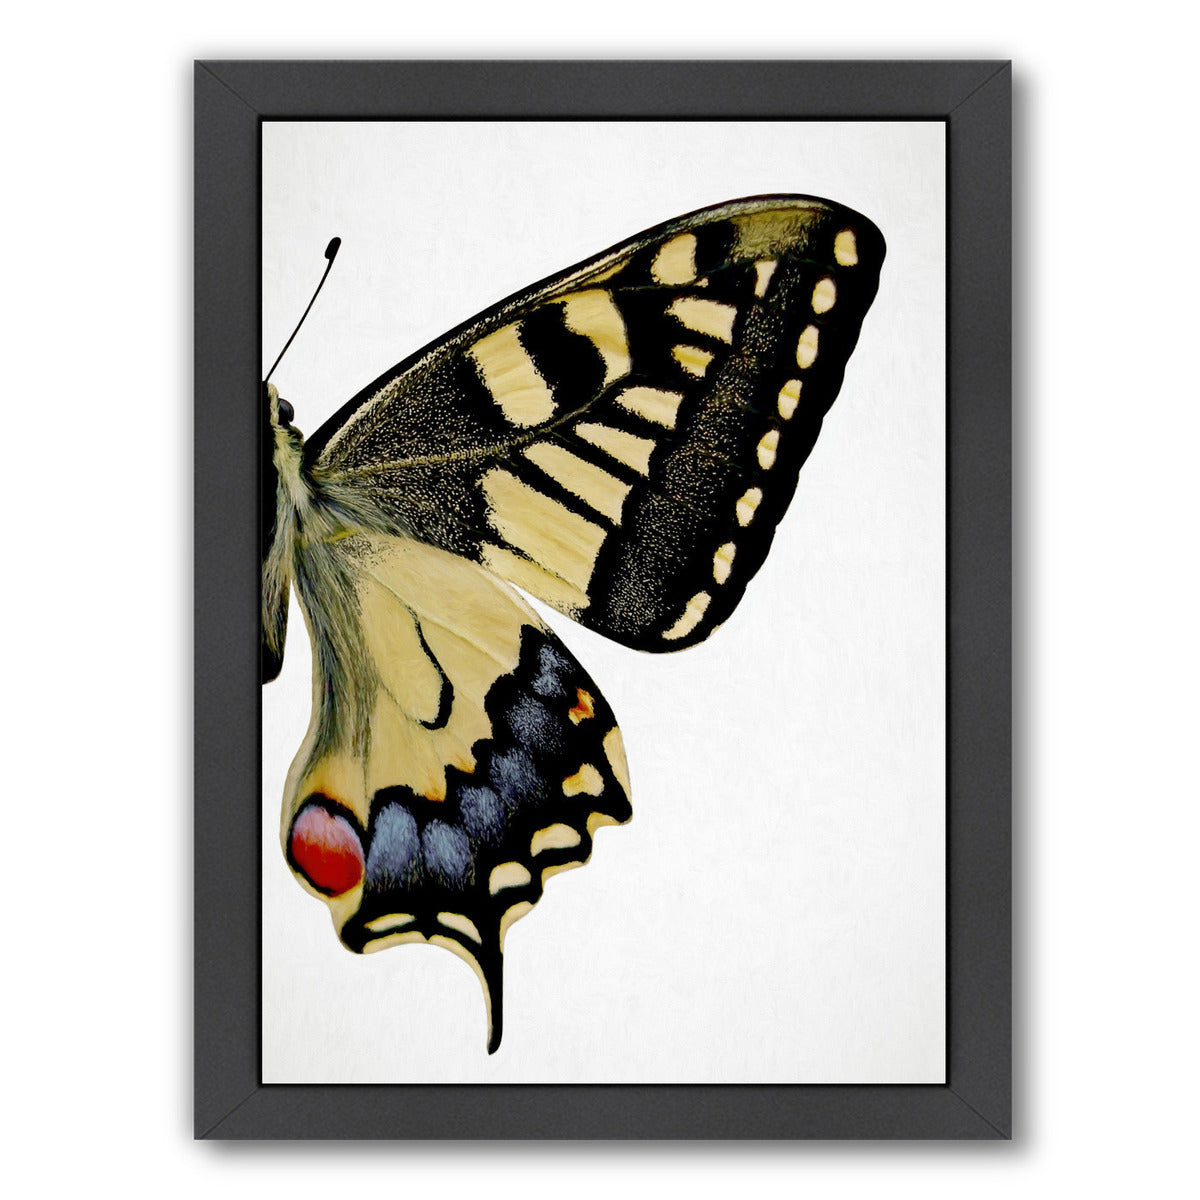 Swallowtail Ii By Chaos & Wonder Design - Black Framed Print - Wall Art - Americanflat